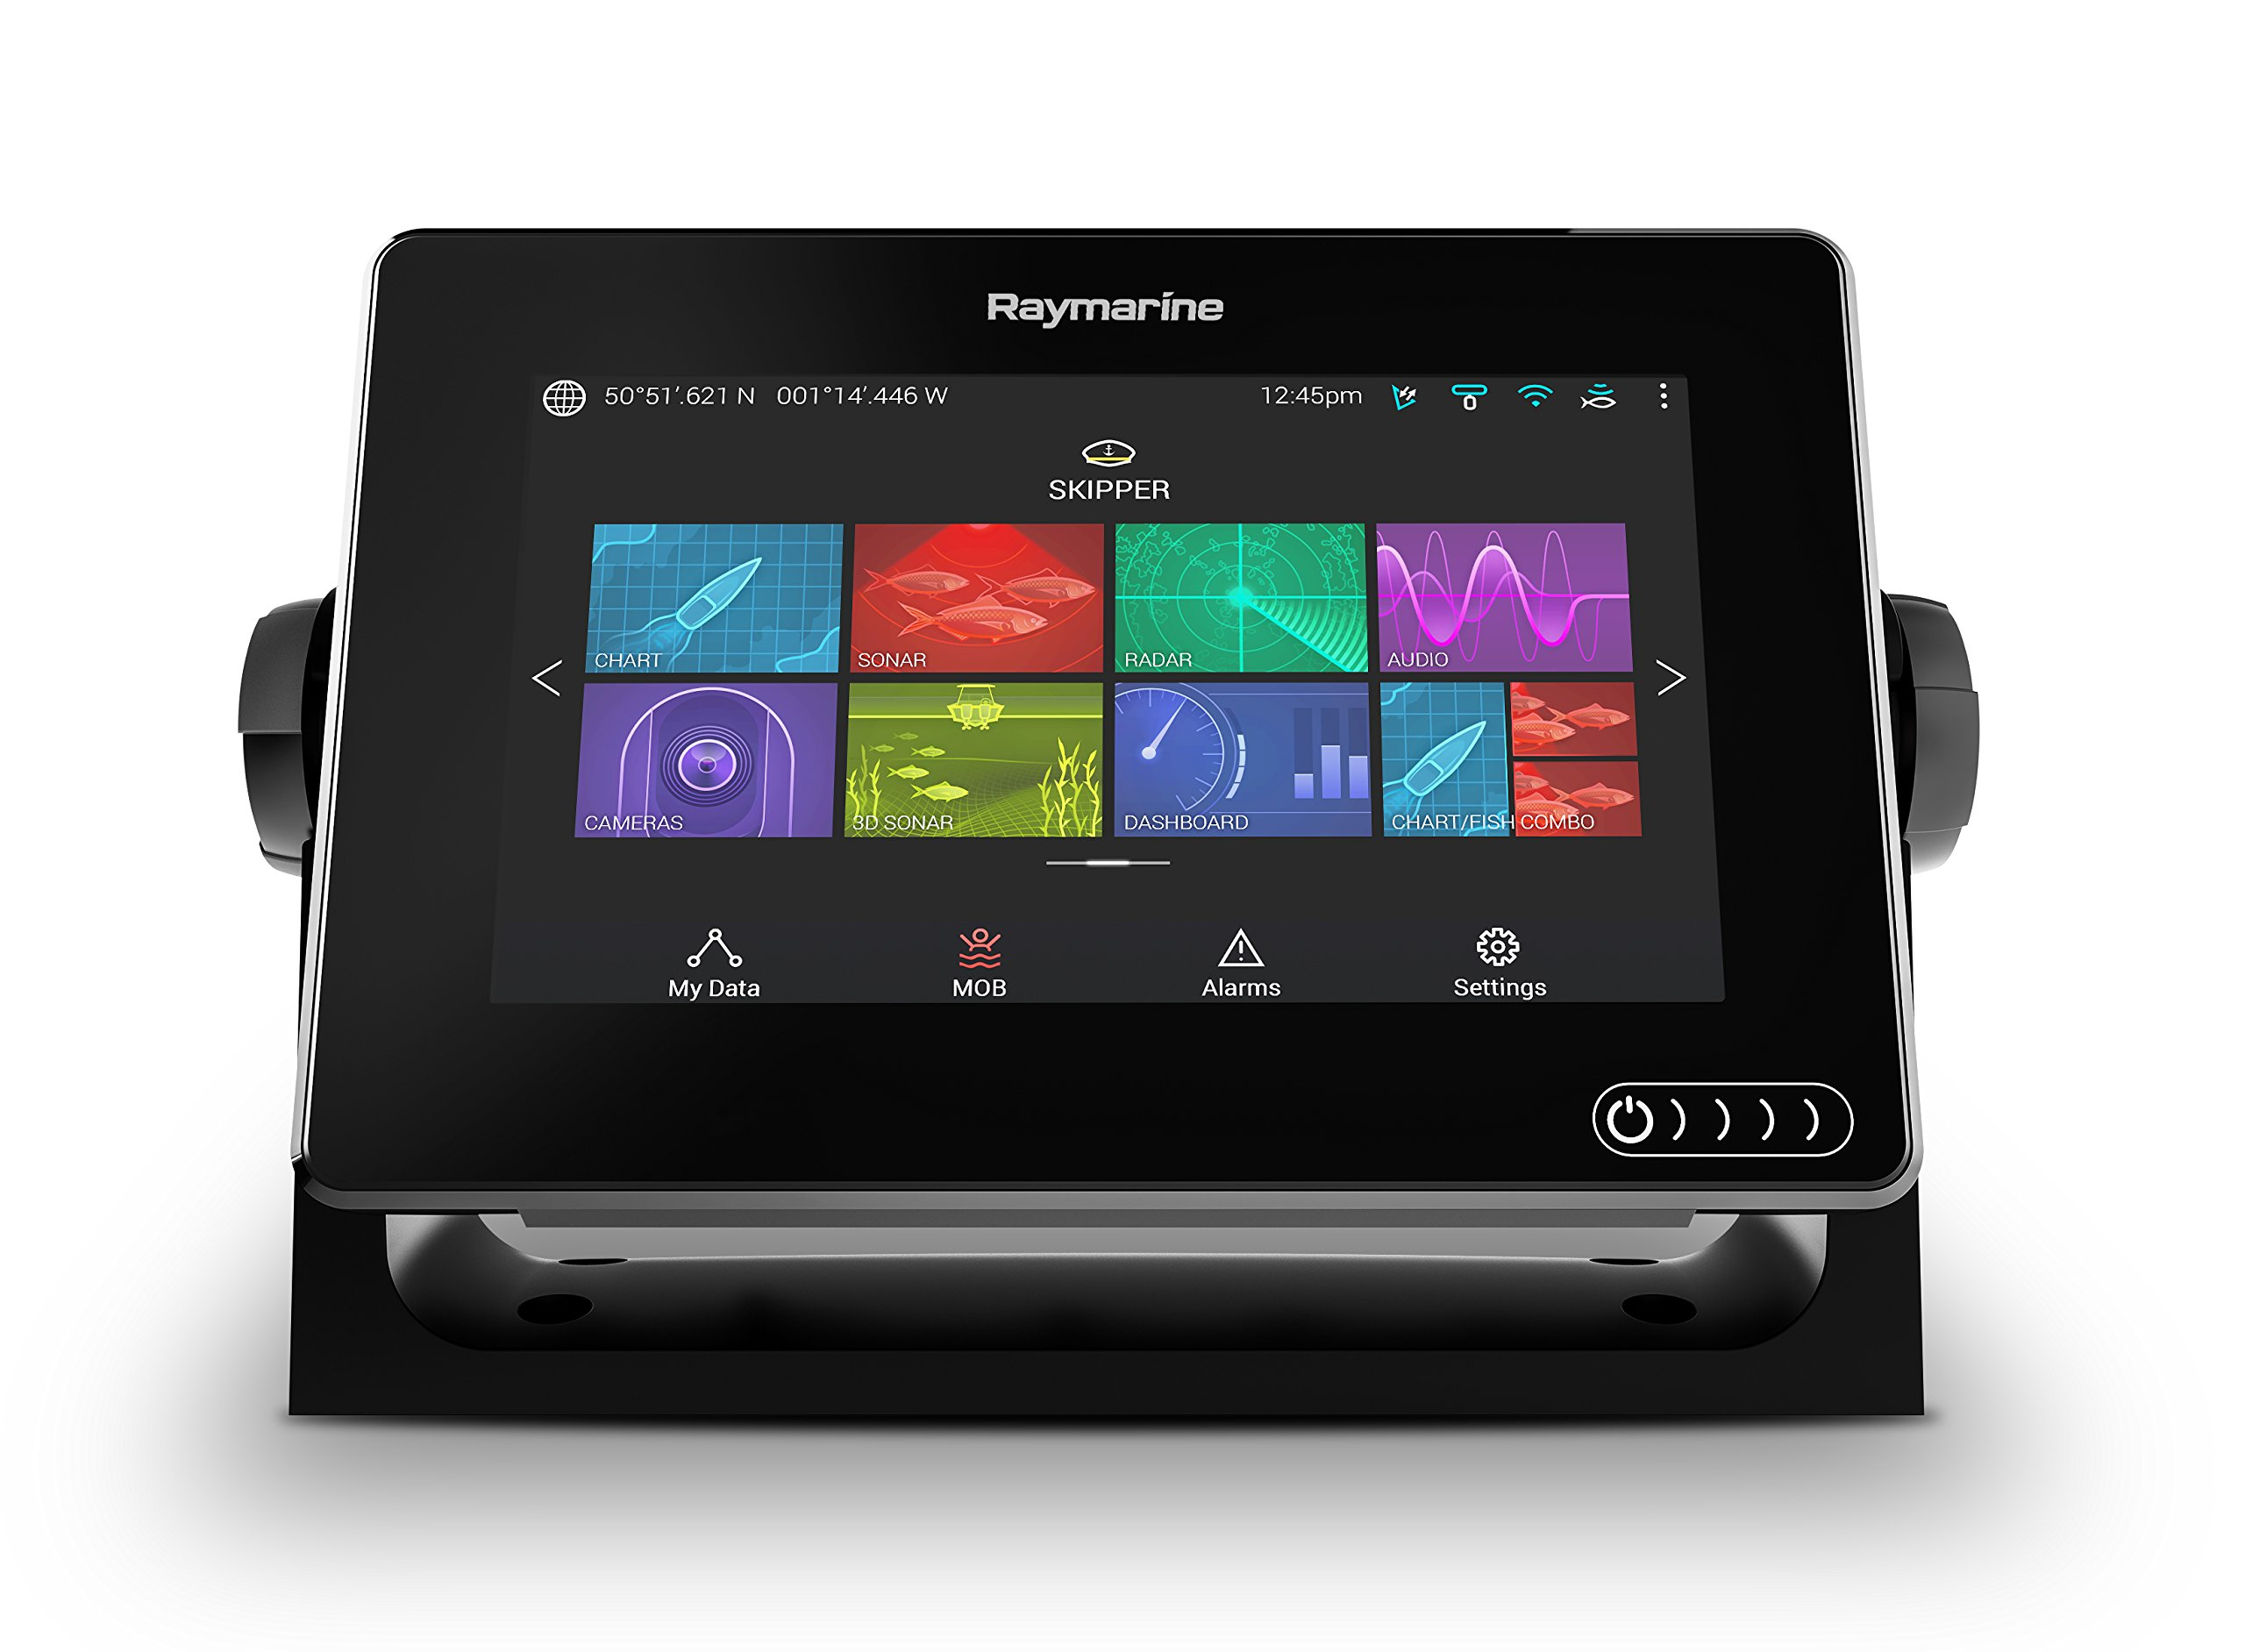 Raymarine Axiom 9 Fish Finder with built in GPS, Wifi, CHIRP Sonar and RealVision 3D with Transducer and Navionics+